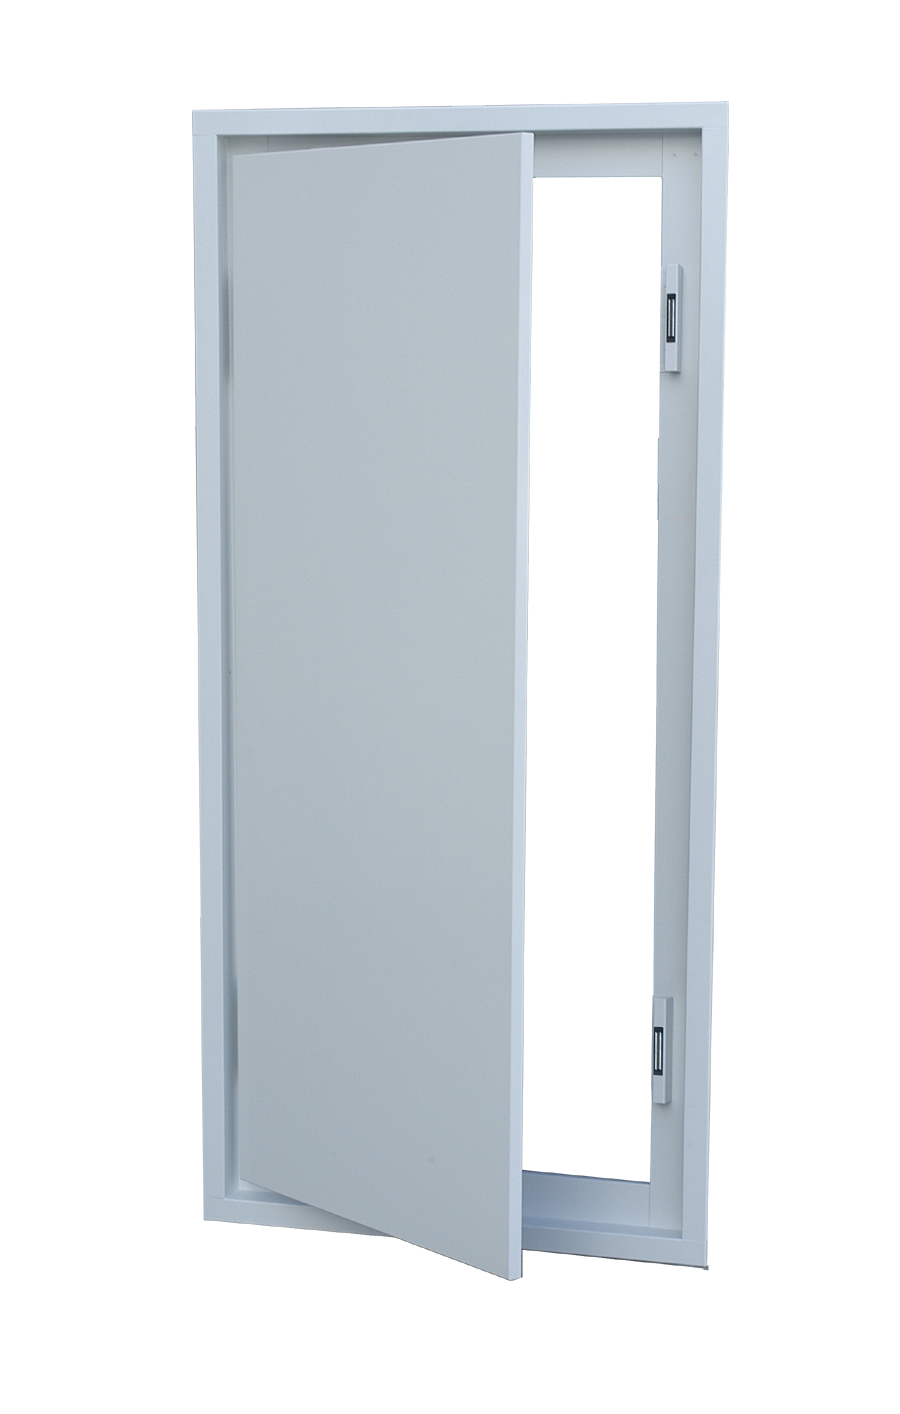 Small Access Doors : Access panels inc